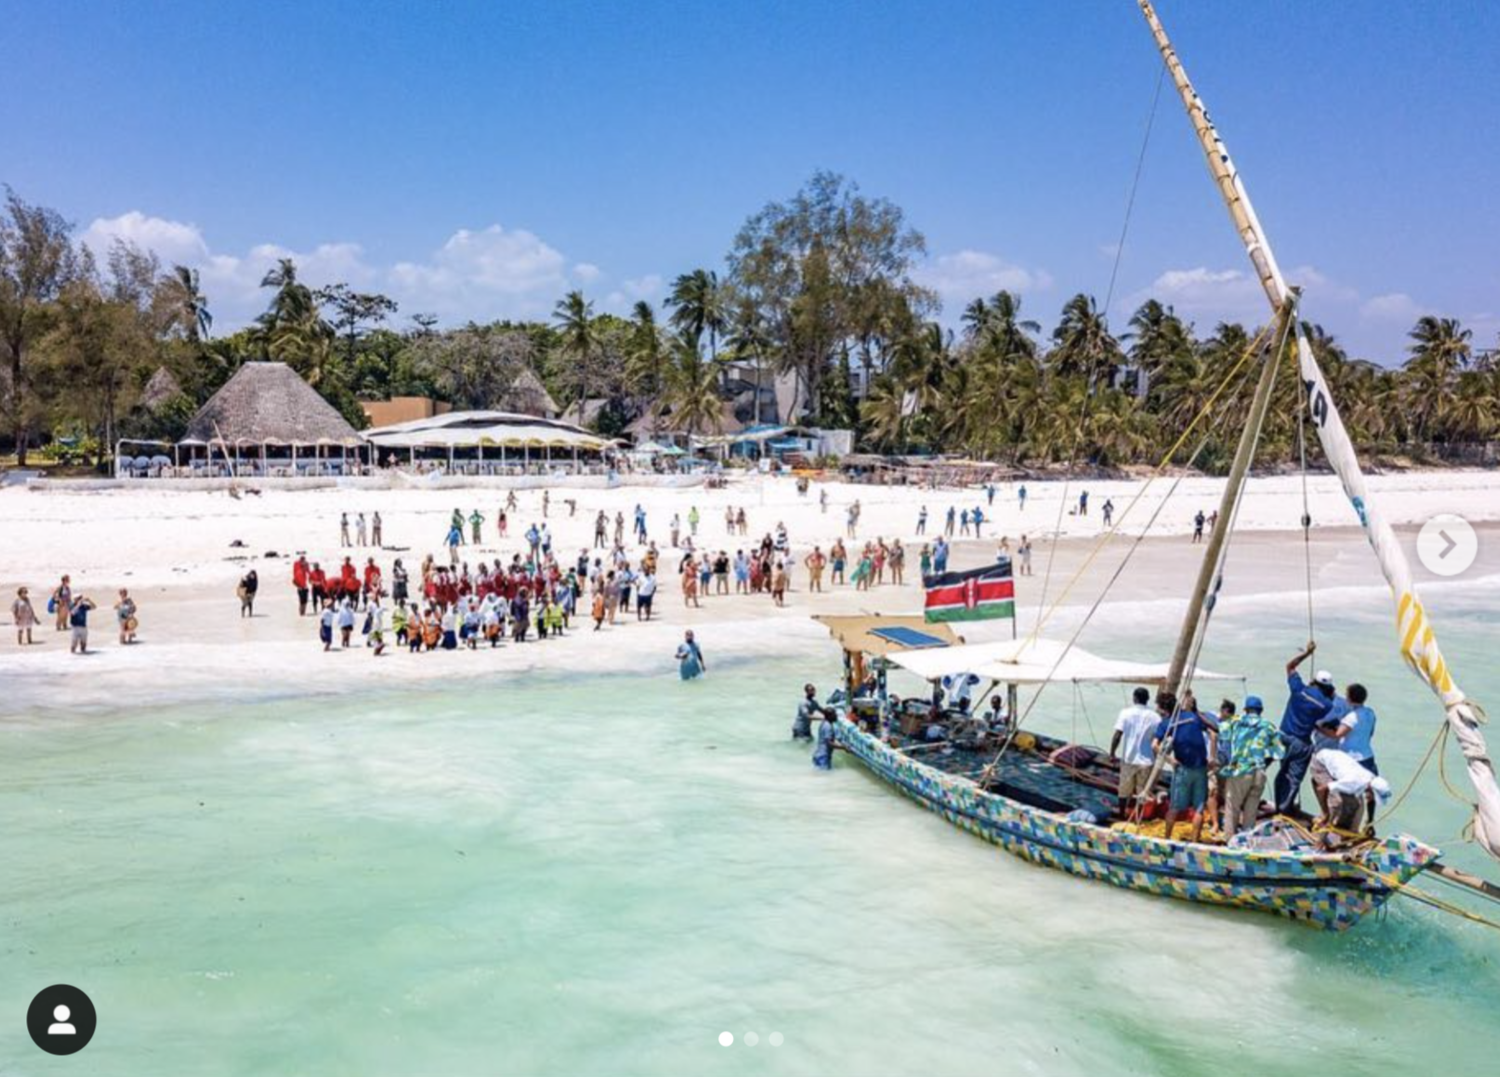 A muli-colored sailboat sits in shallow water just off a white, sandy beach. Many people are on the boat and the shore. A Kenyan flag flies high above the solar panel on the boat.